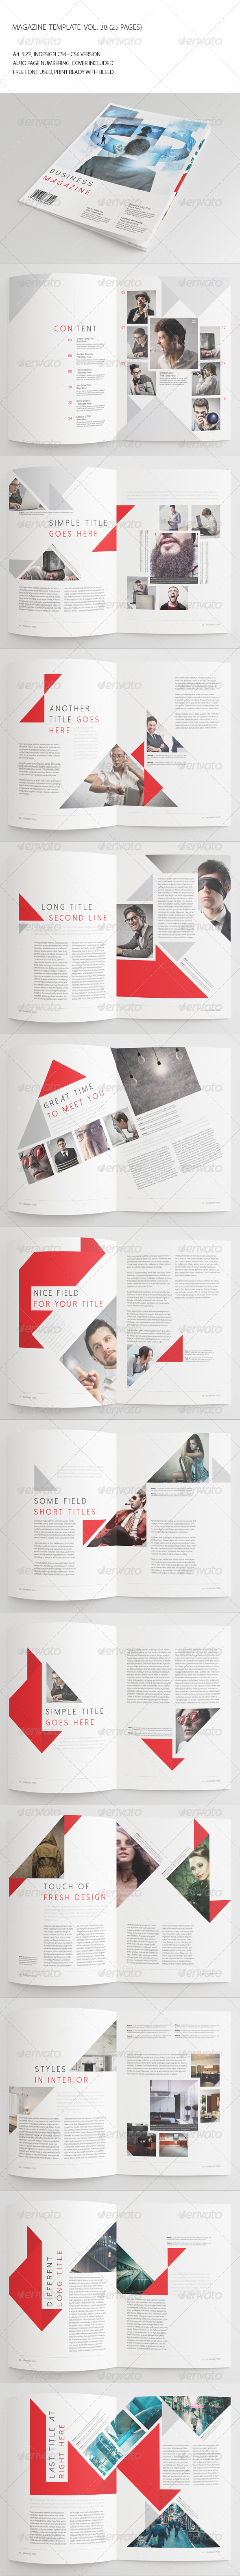 GraphicRiver 25 Pages Business Magazine Vol38 7336492